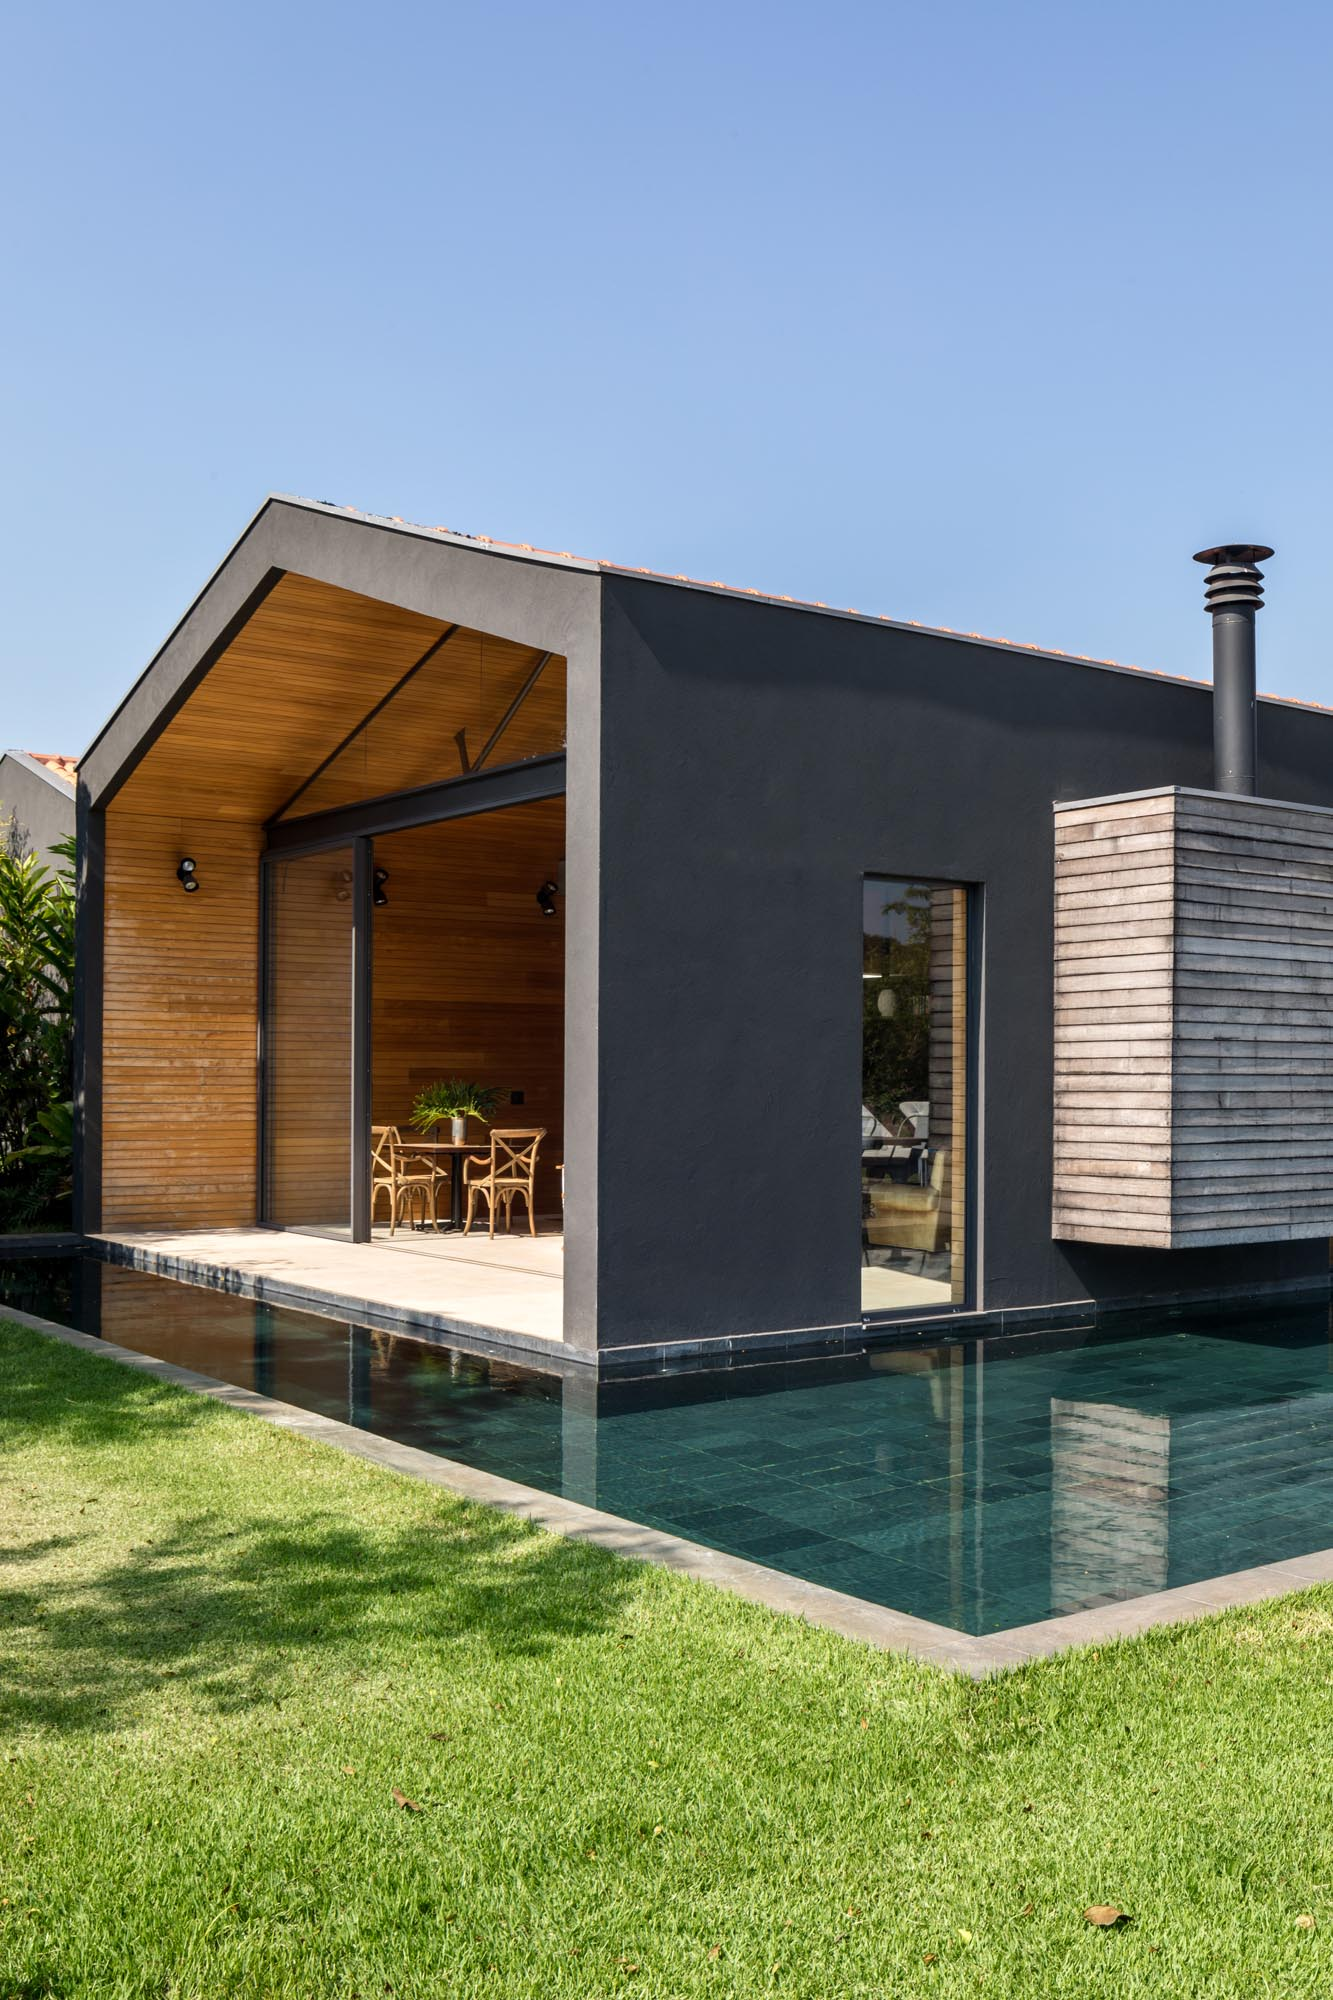 The exterior of this modern home is a black-painted mass, contrasting the surrounding nature, and providing a bold backdrop for the outdoors spaces, like the patio and swimming pool.